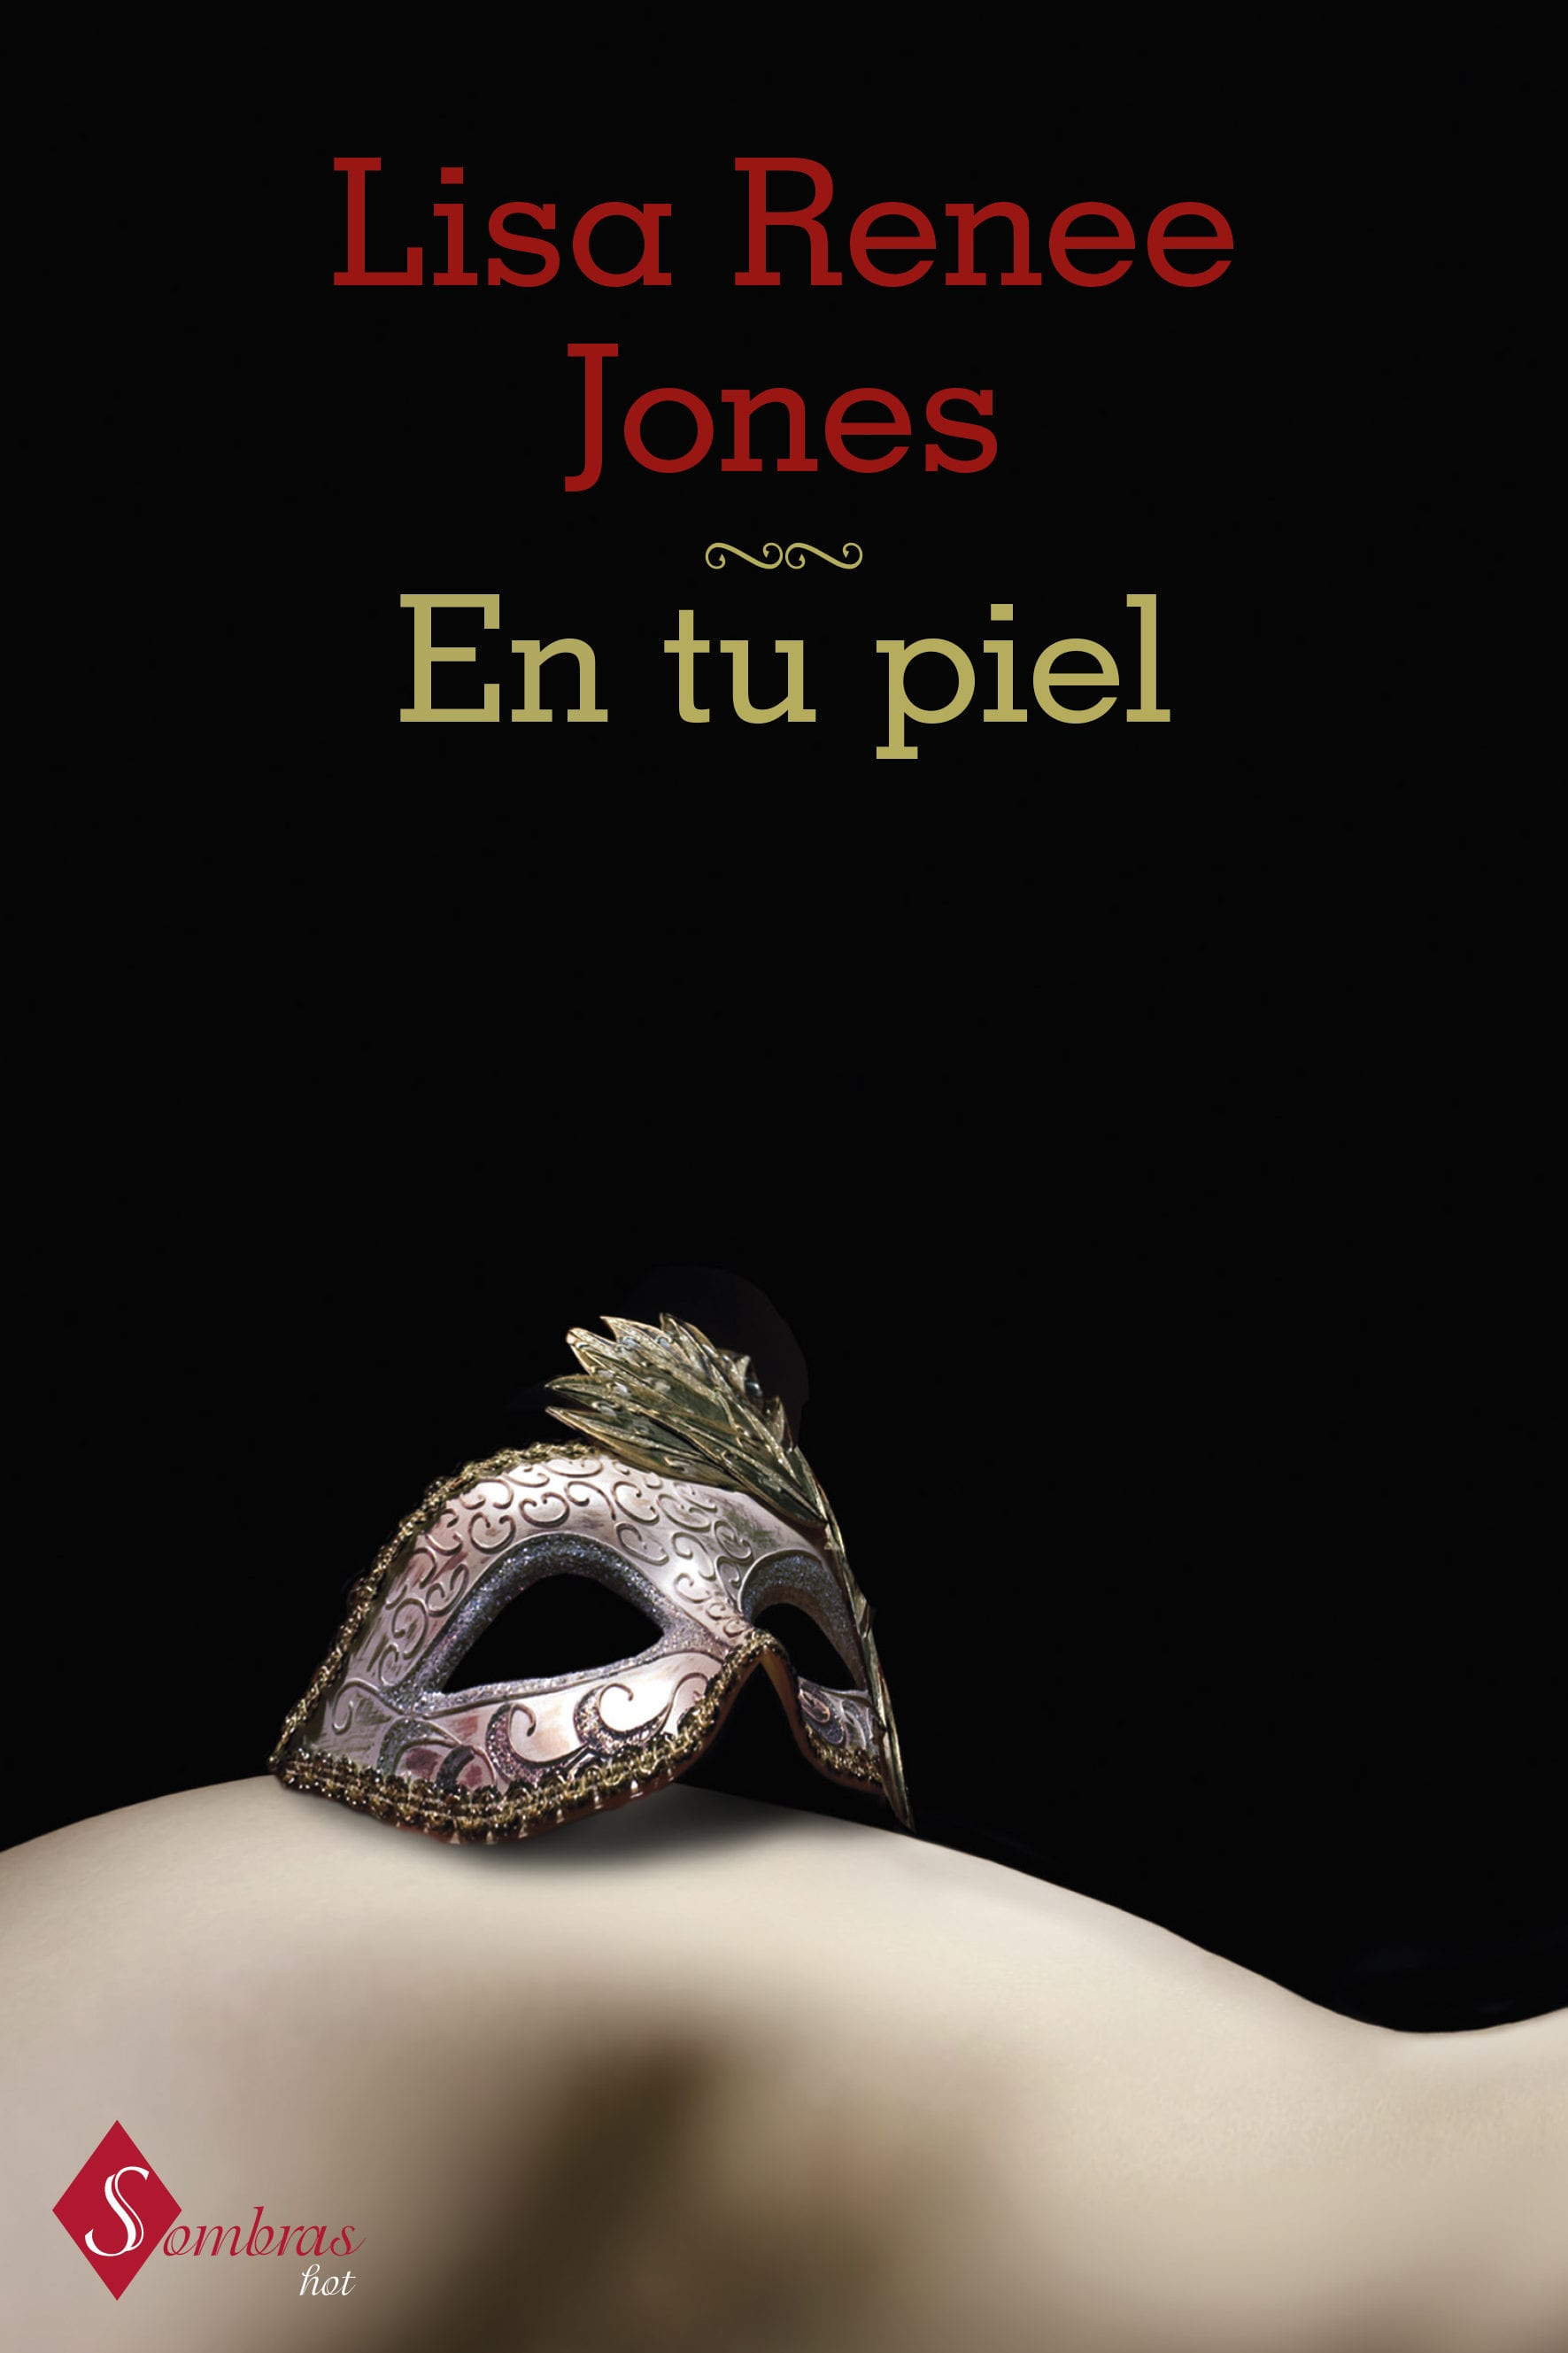 Todo o nada, Lisa Renee Jones - Reseña